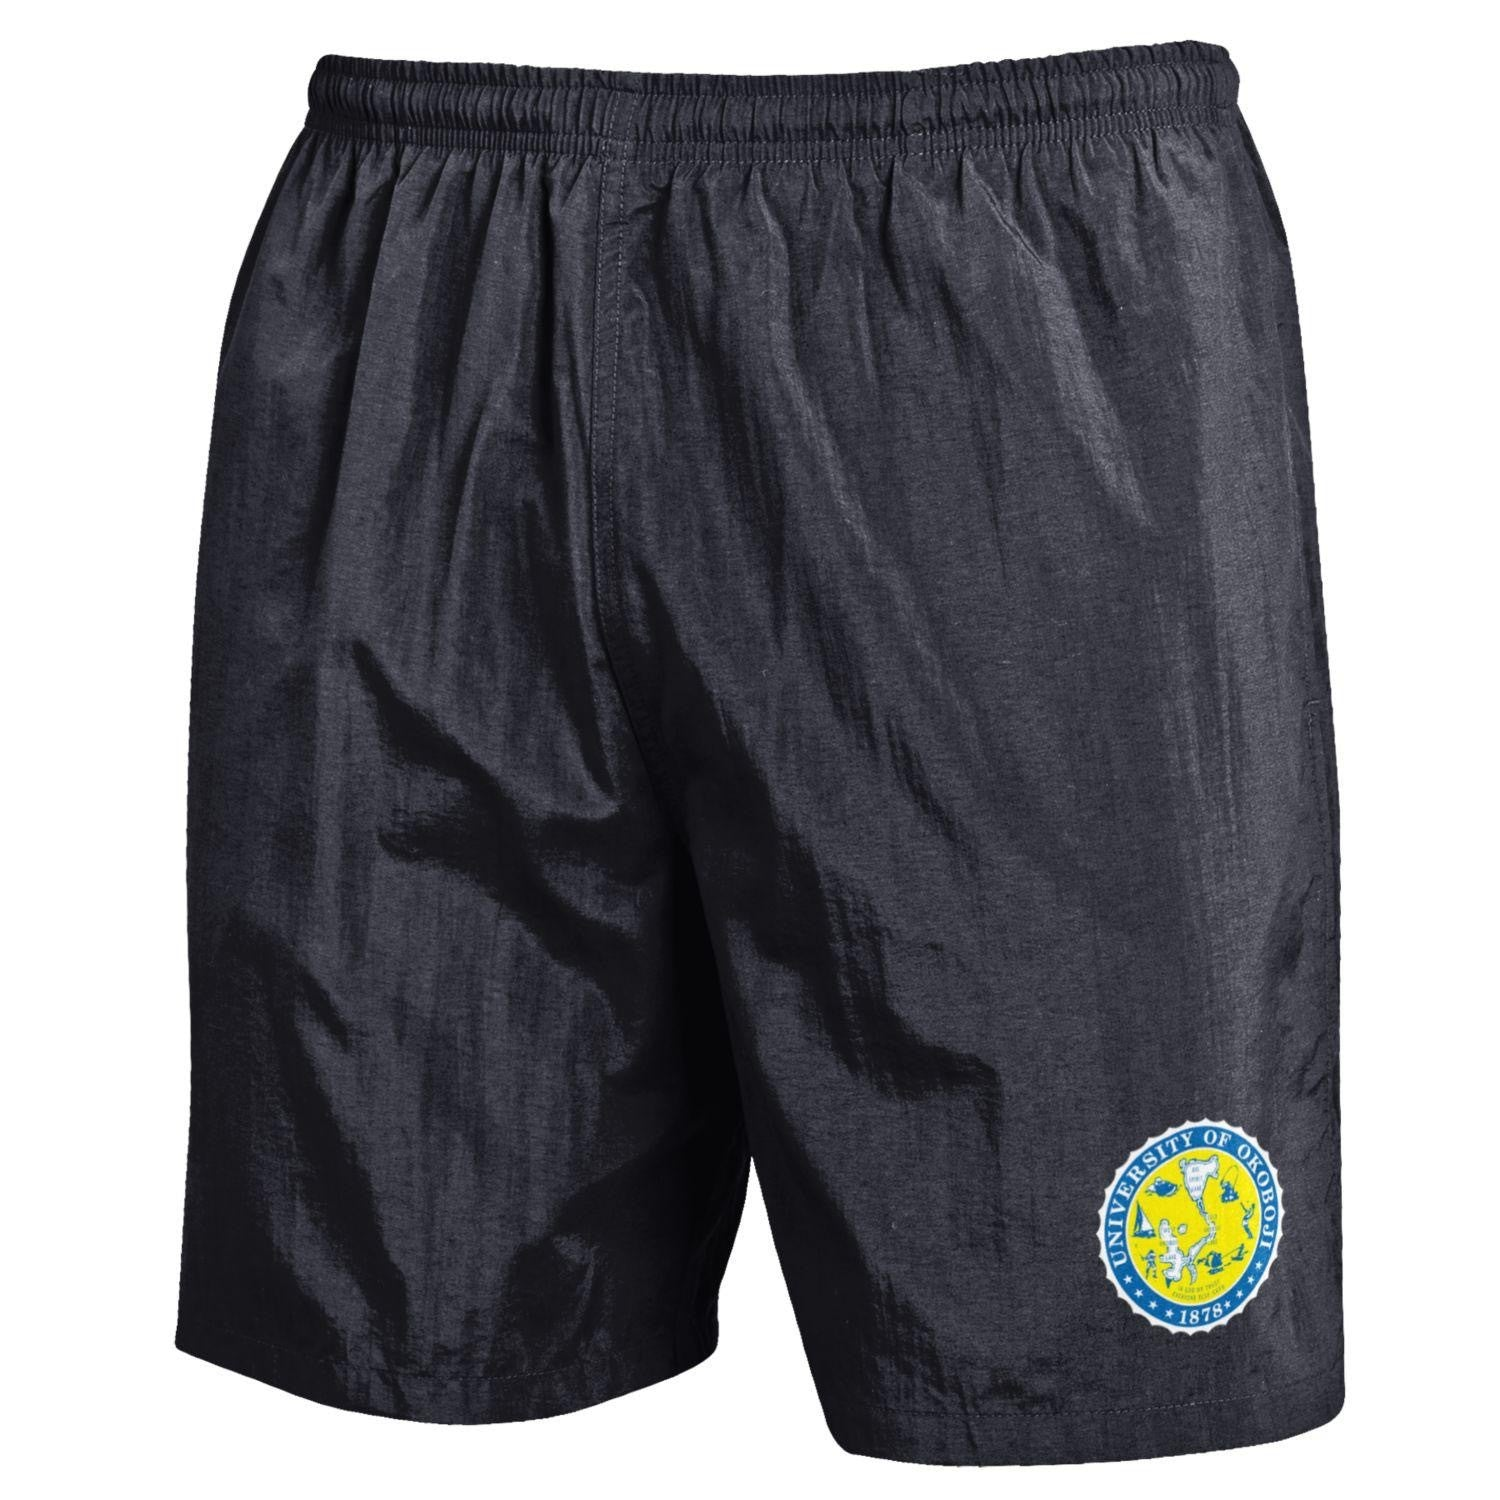 University of Okoboji Swim Trunks